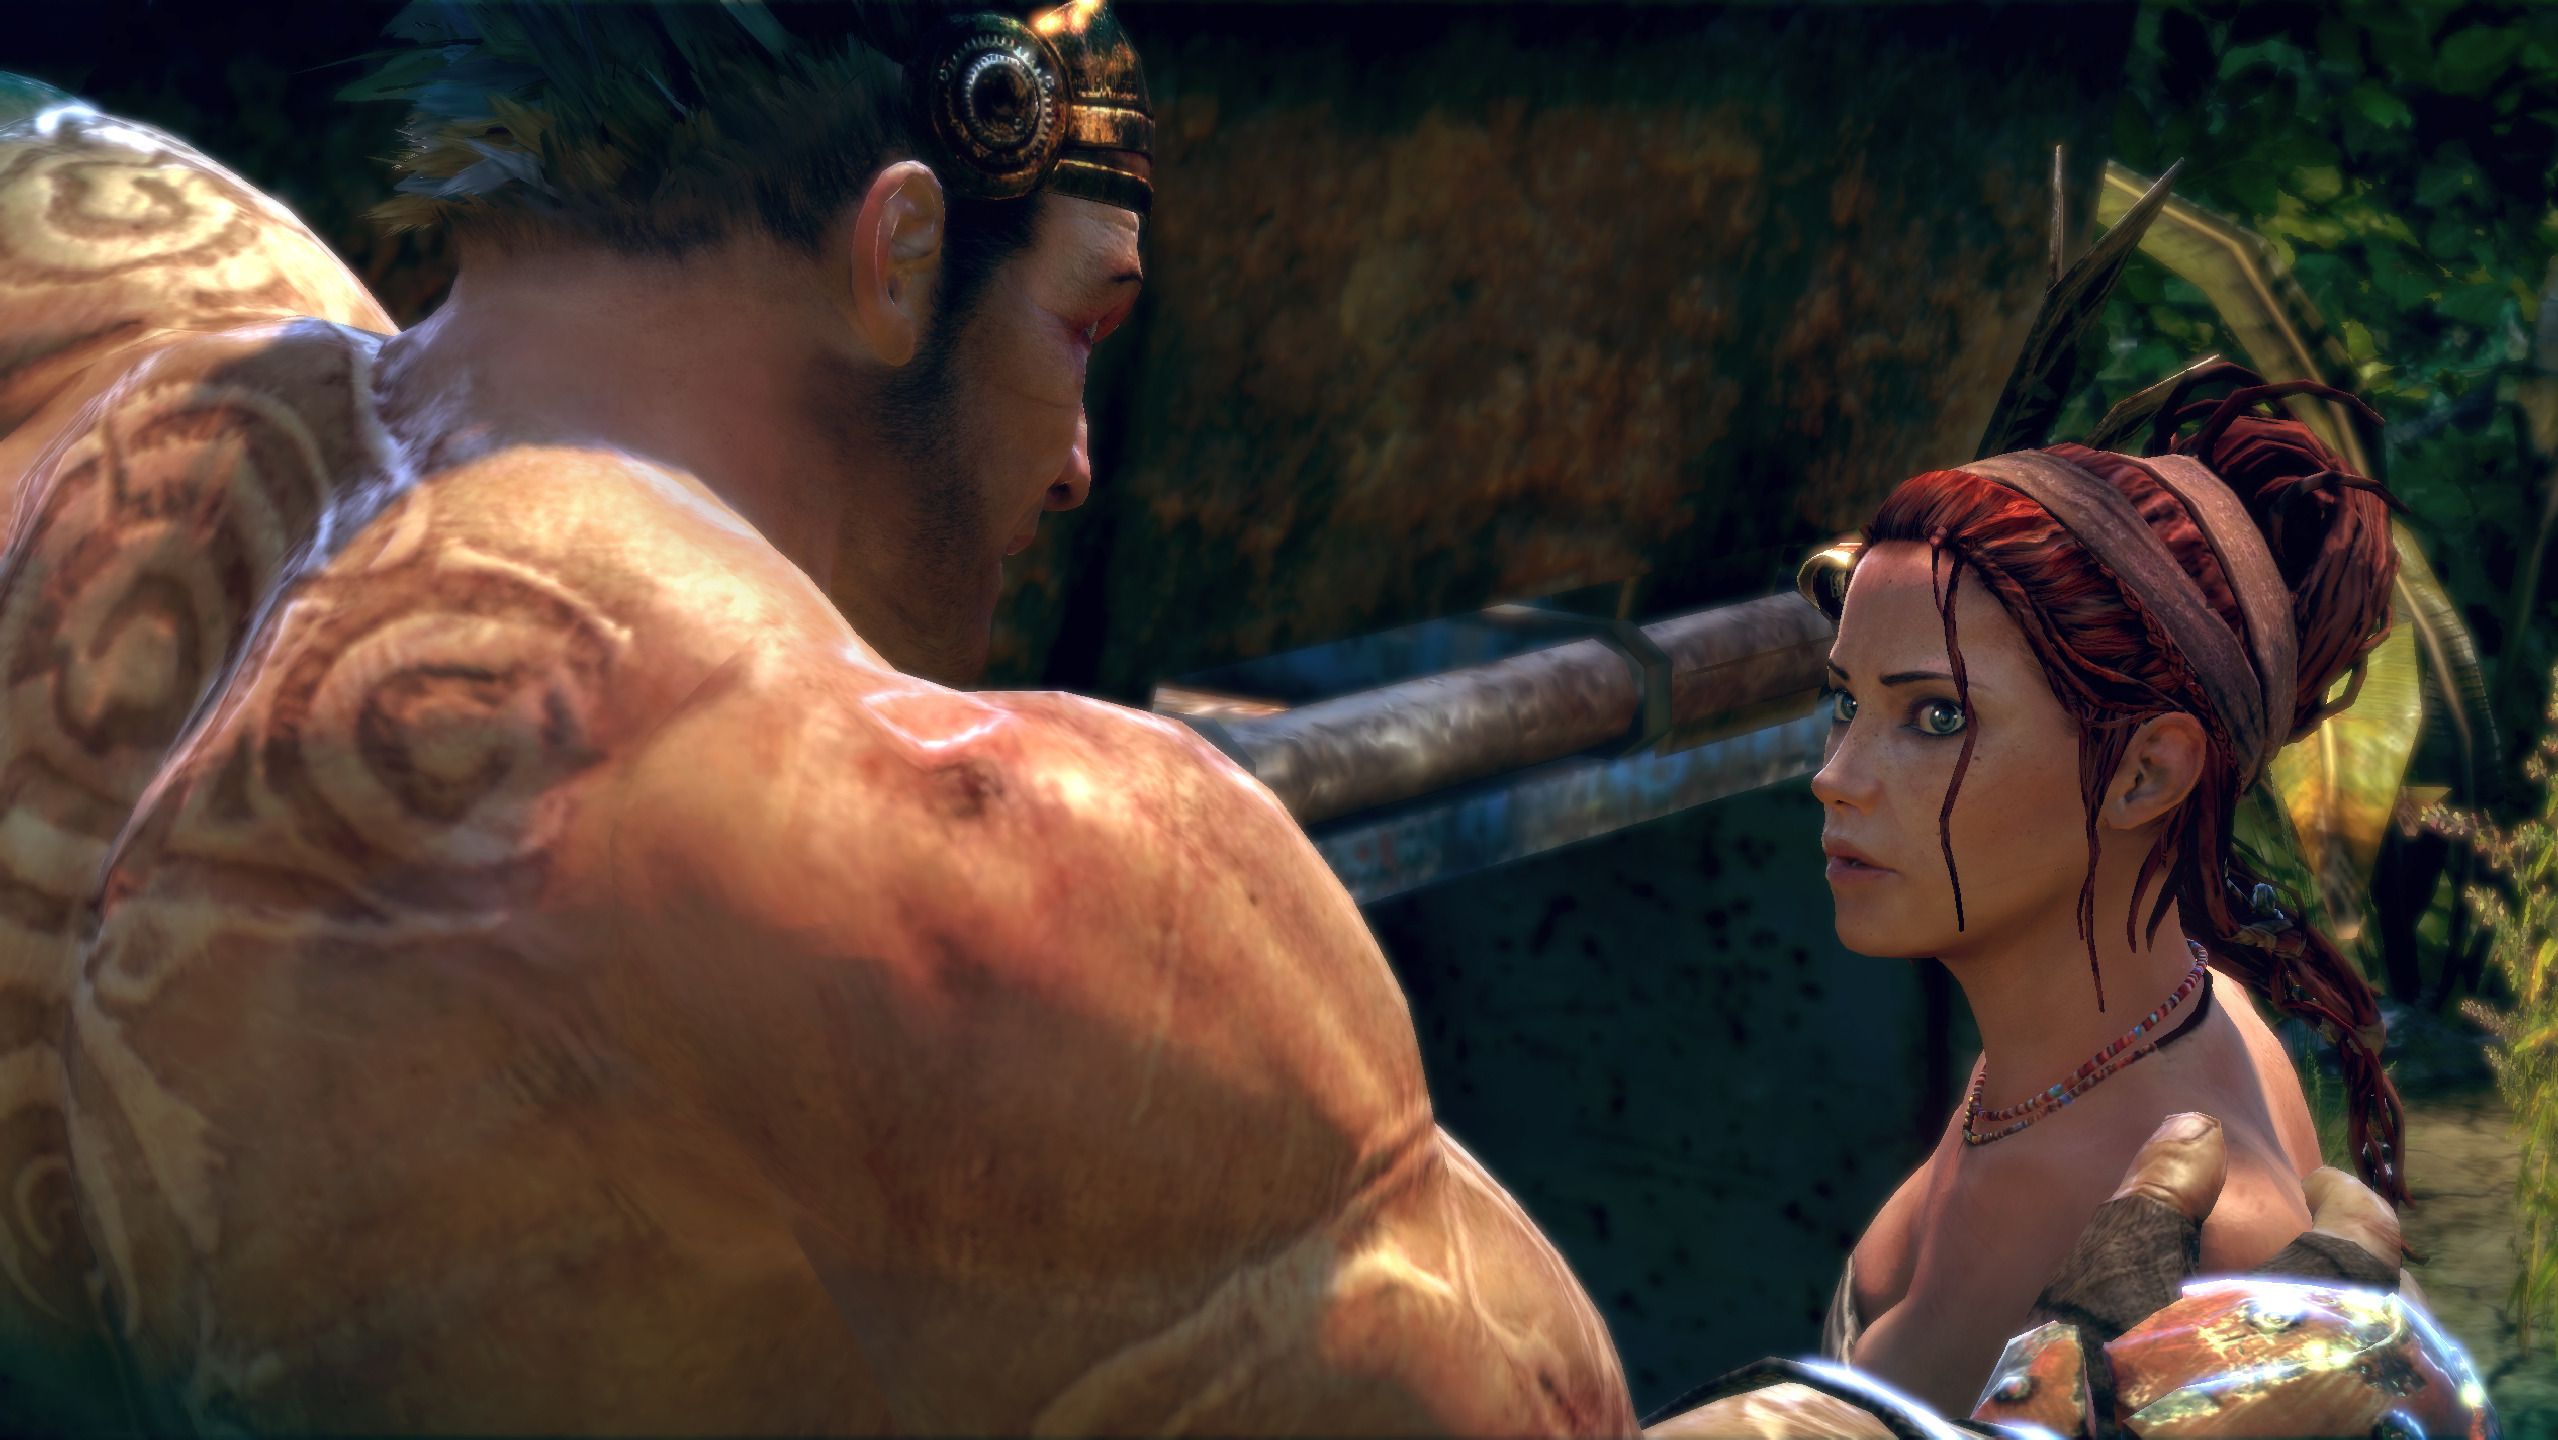 Enslaved odyssey to the west porn xxx video